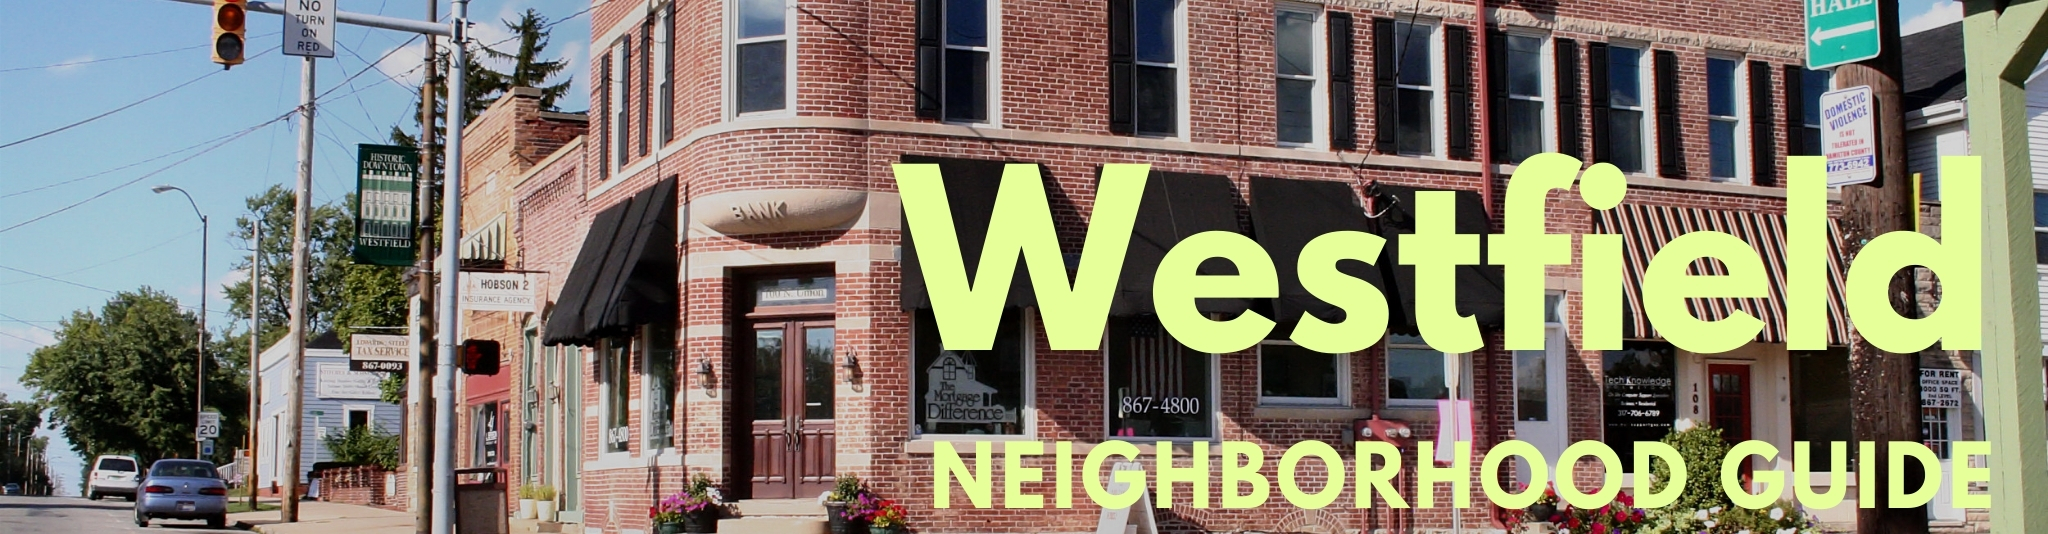 Downtown Westfield Indiana is home to many historic buildings.